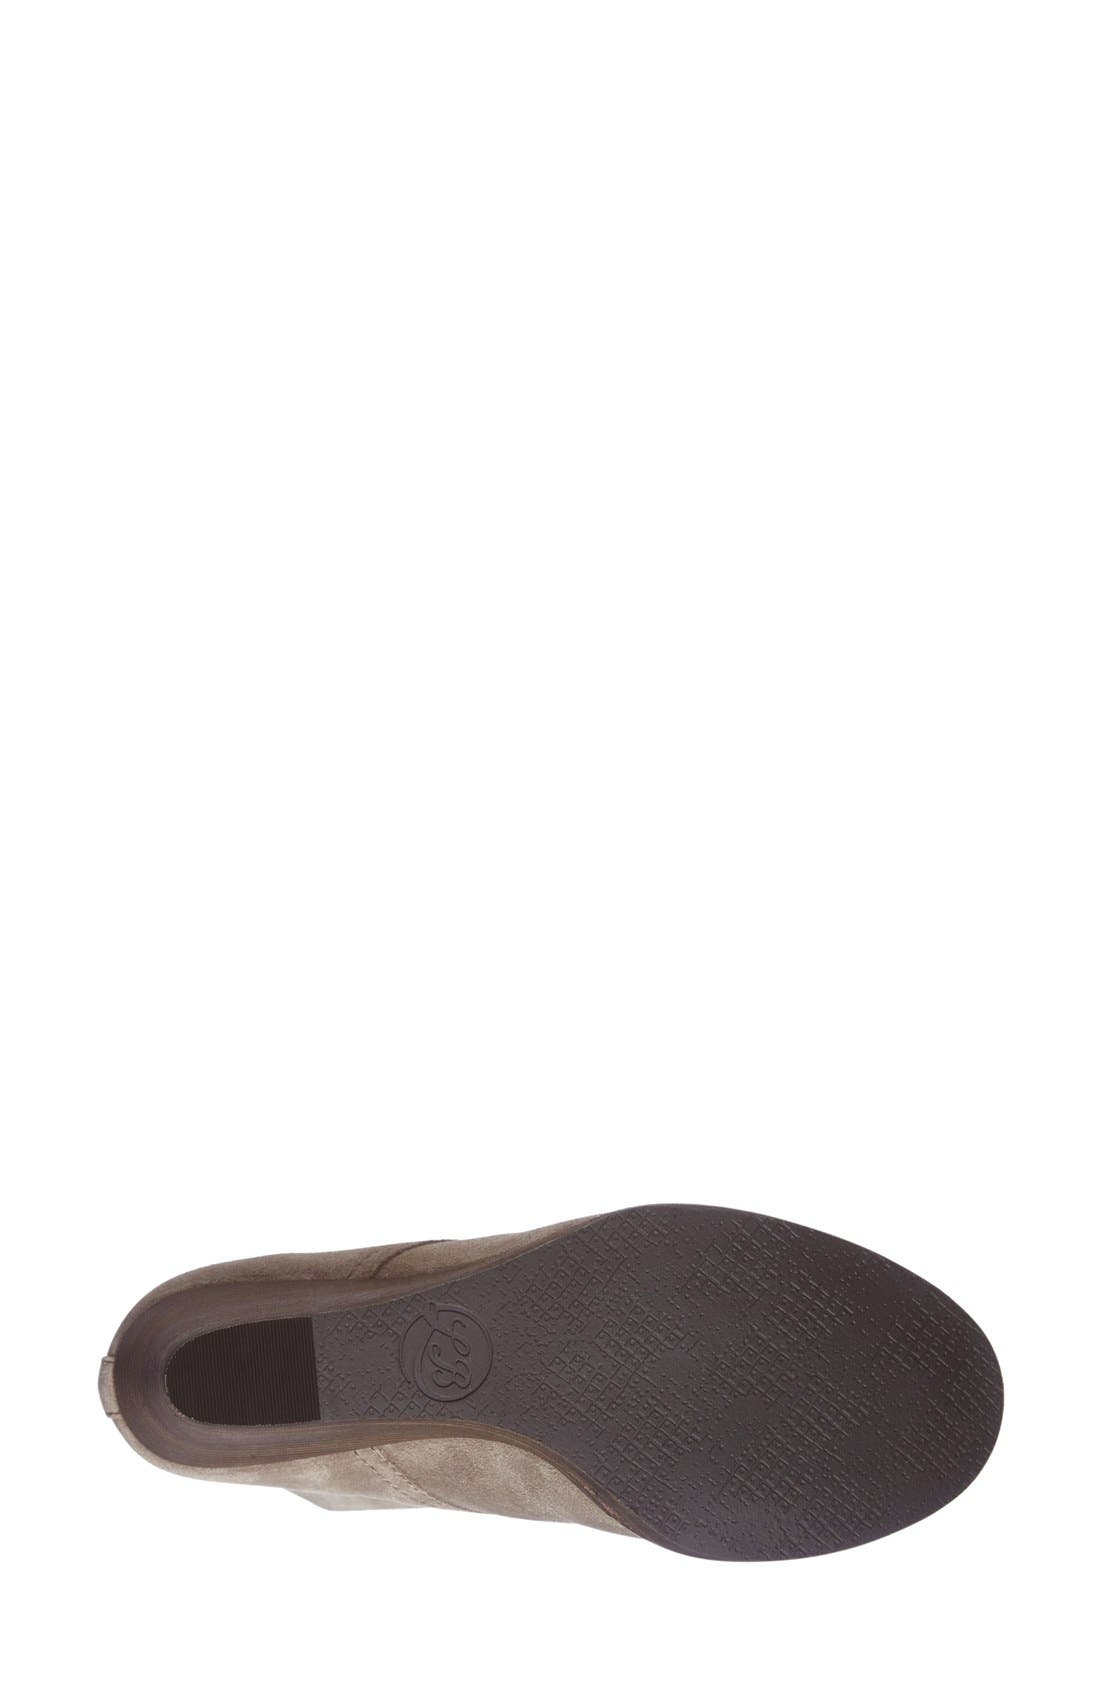 'Yoniana' Wedge Bootie,                             Alternate thumbnail 14, color,